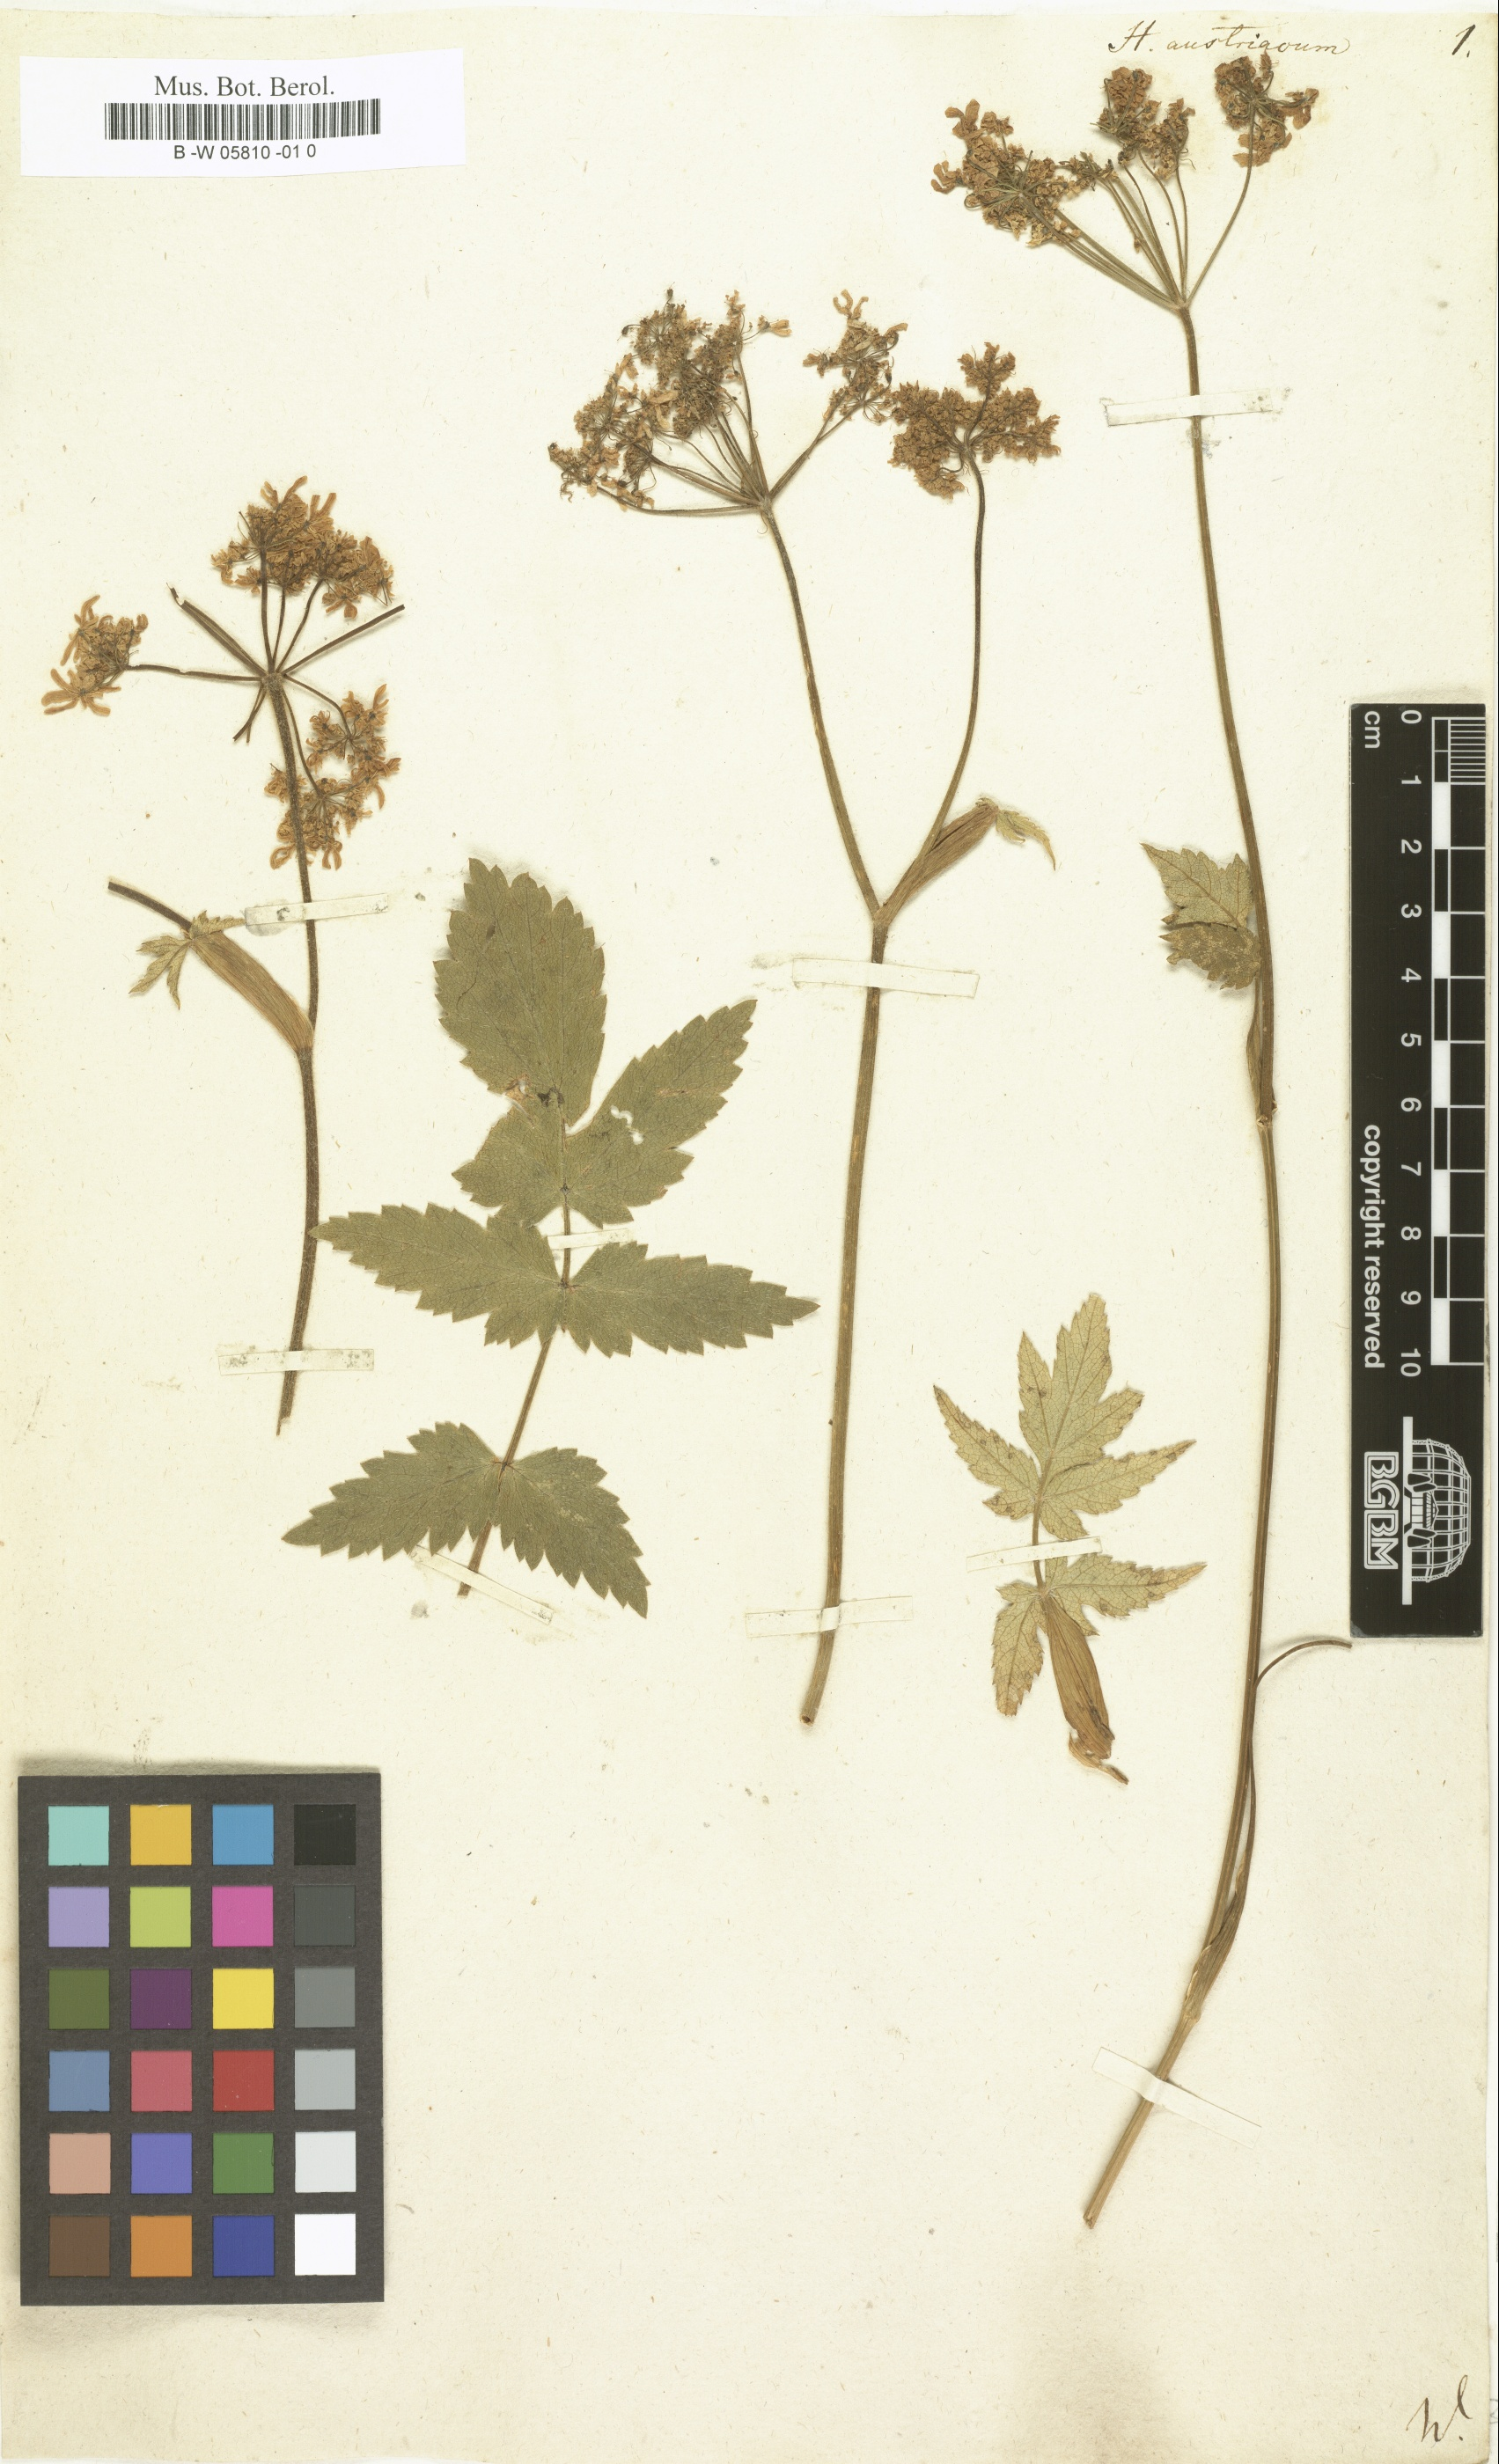 © Röpert, D. (Ed.) 2000- (continuously updated): Digital specimen images at the Herbarium Berolinense. - Published on the Internet http://ww2.bgbm.org/herbarium/ (Barcode: B -W 05810 -01 0 / ImageId: 341660) [accessed 20-Nov-11].<br>